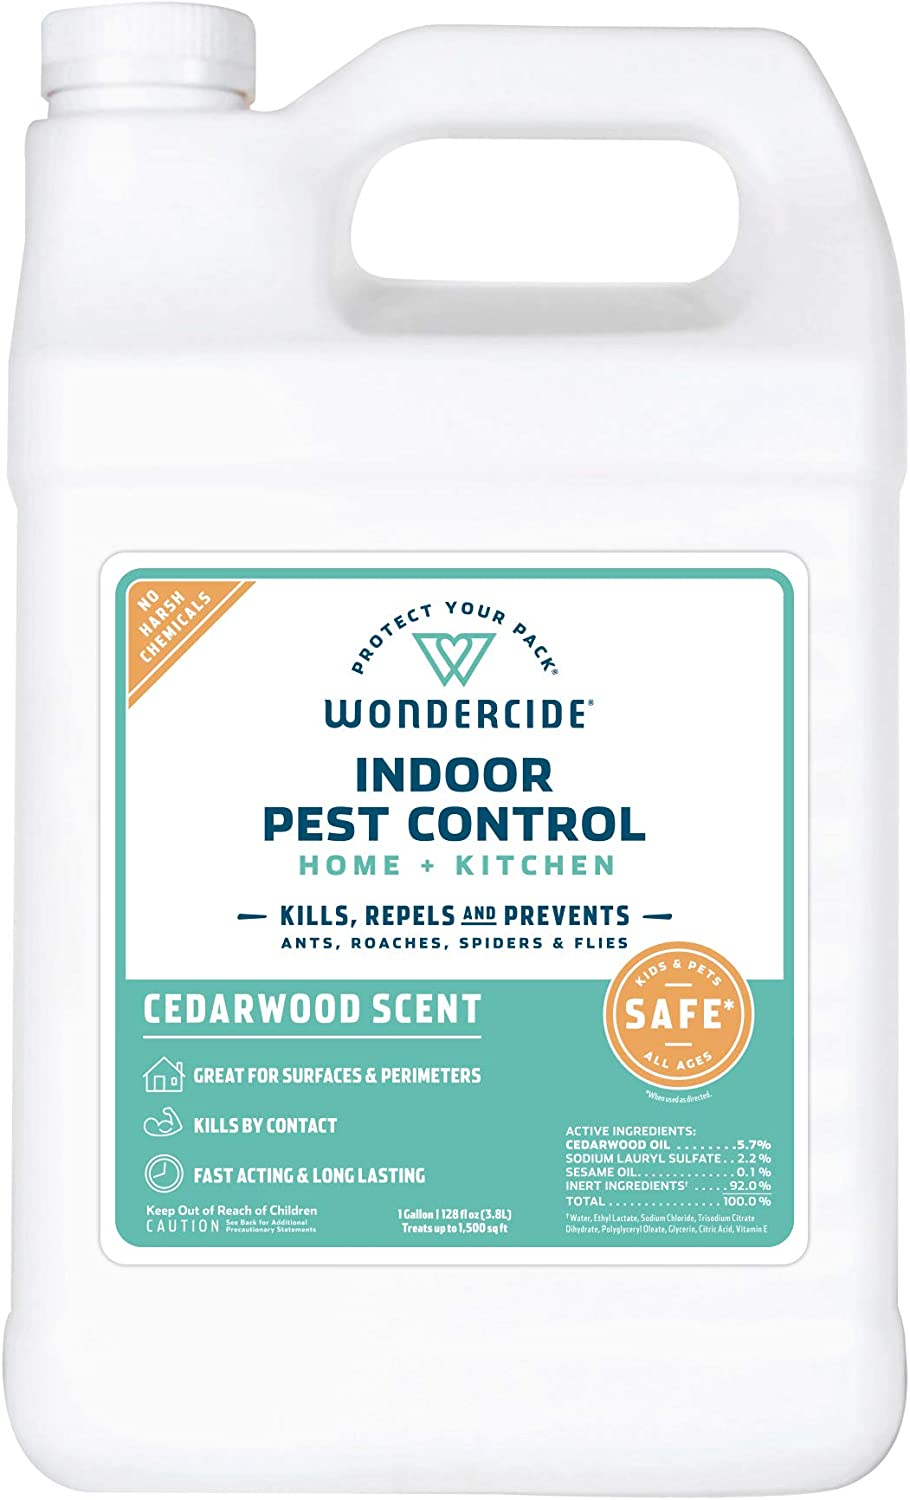 Wondercide Natural Products - Indoor Pest Control Spray for Home and Kitchen - Fly, Ant, Spider, Roach, Flea, Bug Killer and Insect Repellent - Eco-Friendly, Pet and Family Safe — 128 oz Cedarwood